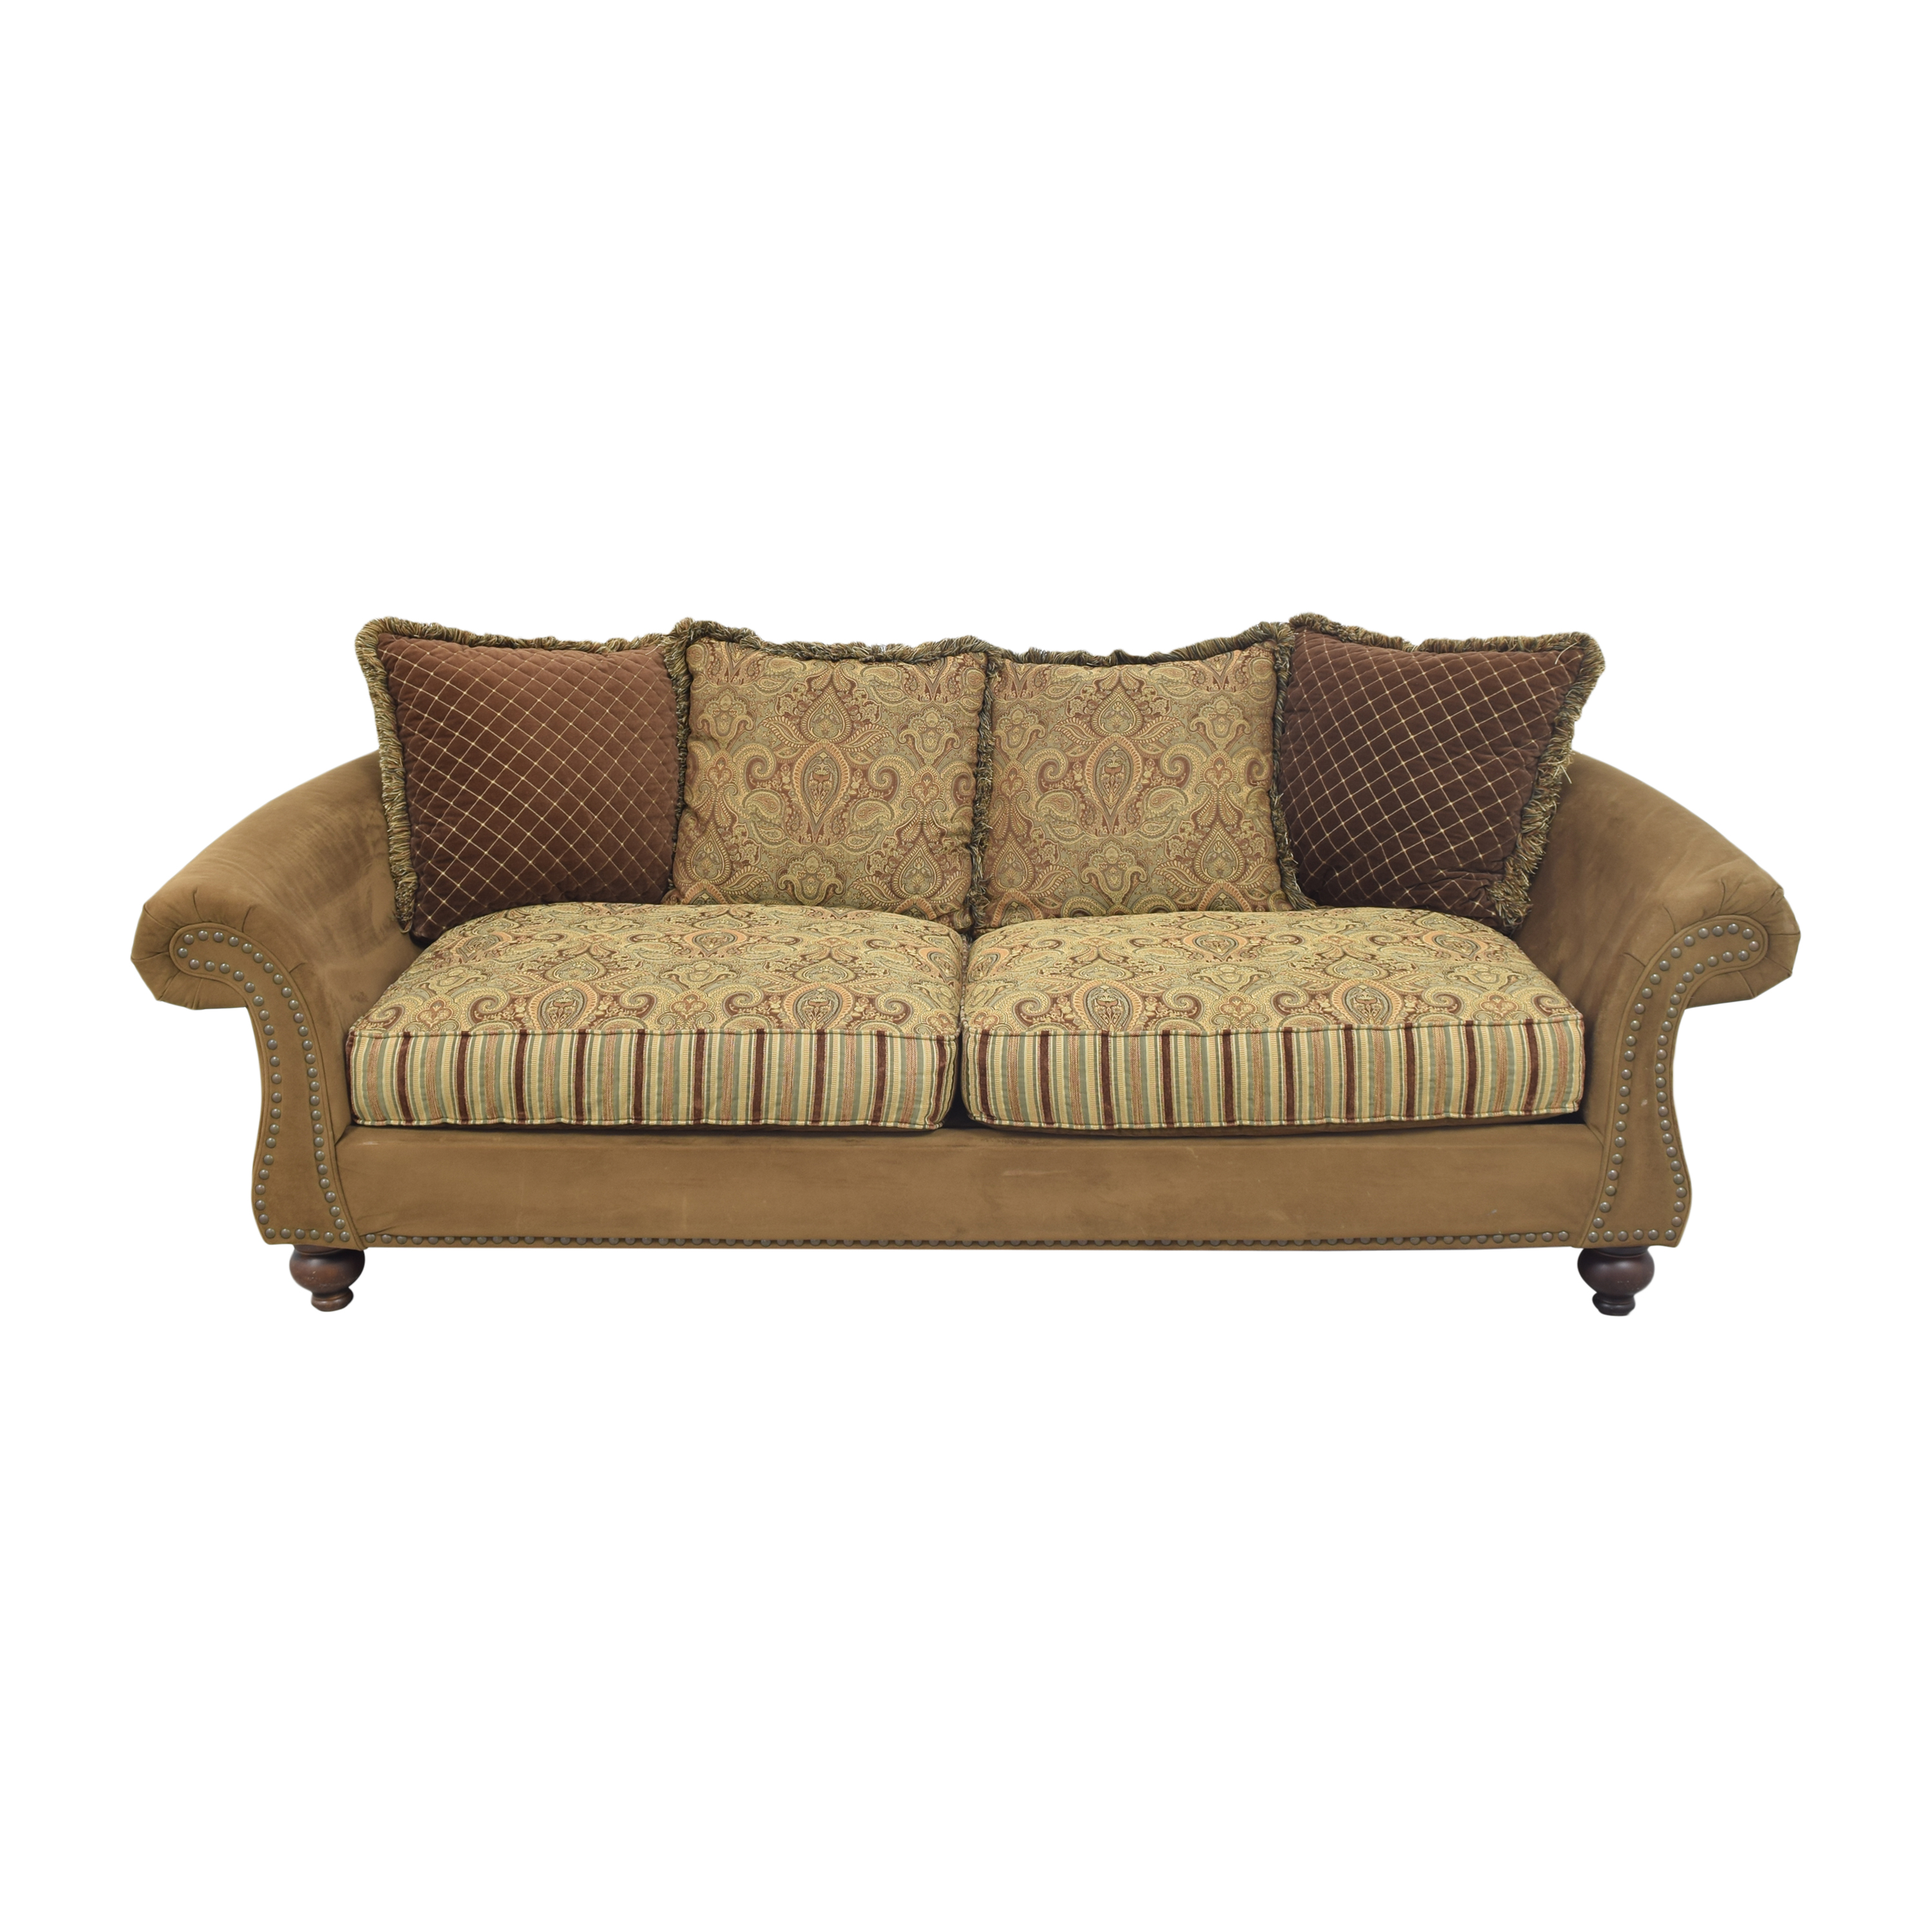 Raymour & Flanigan Raymour & Flanigan Valencia Sofa by Cindy Crawford Home  on sale